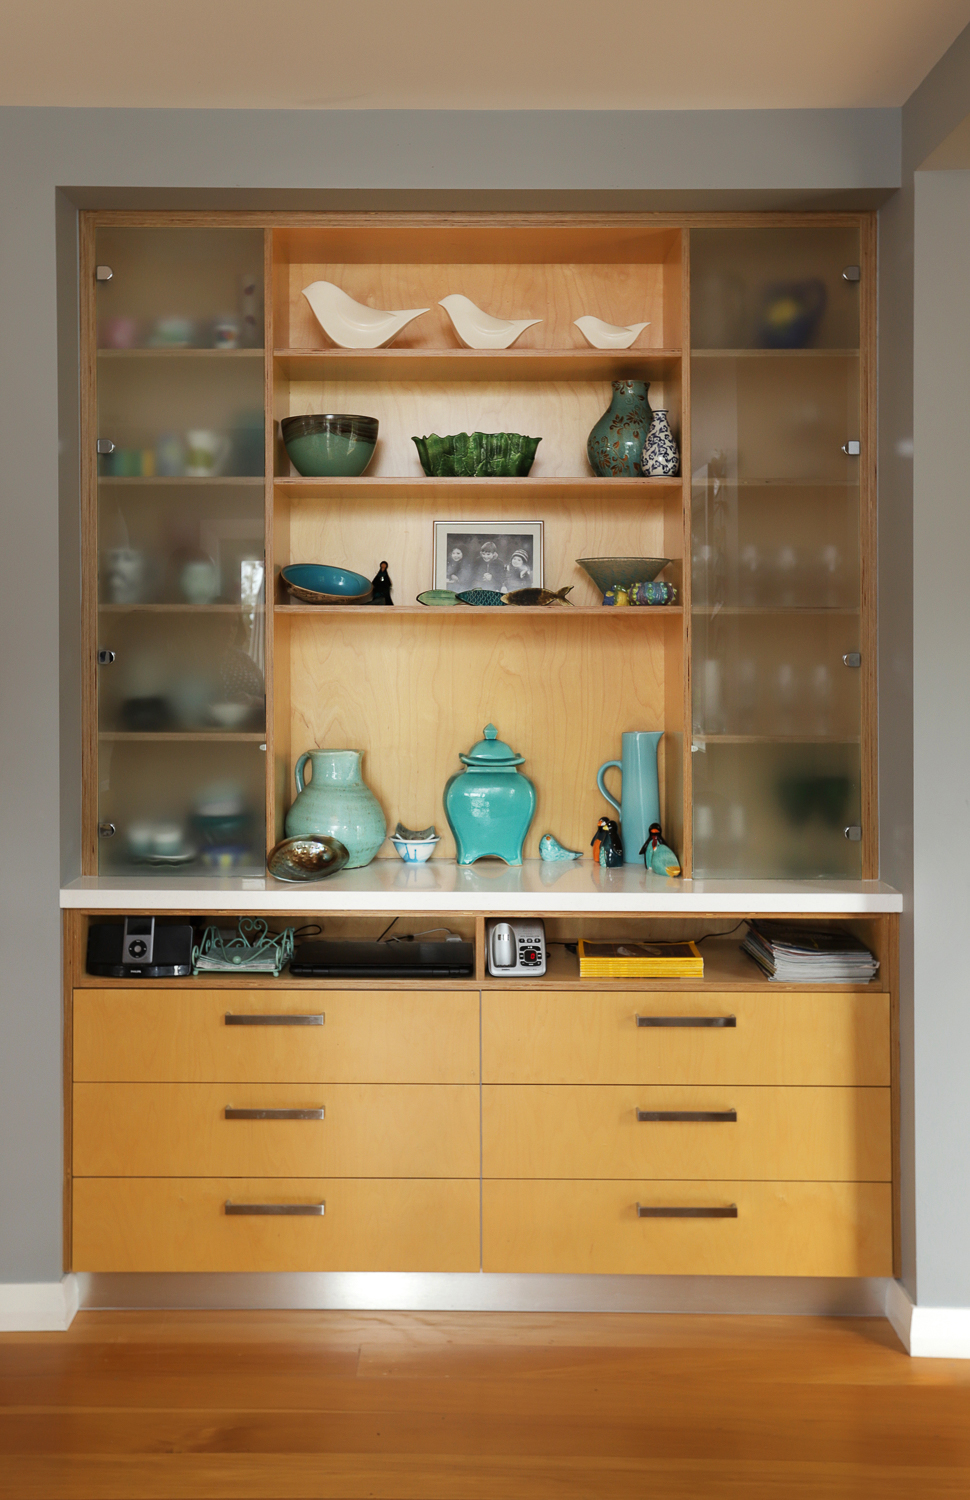 Birch ply cabinet with frosted glass doors